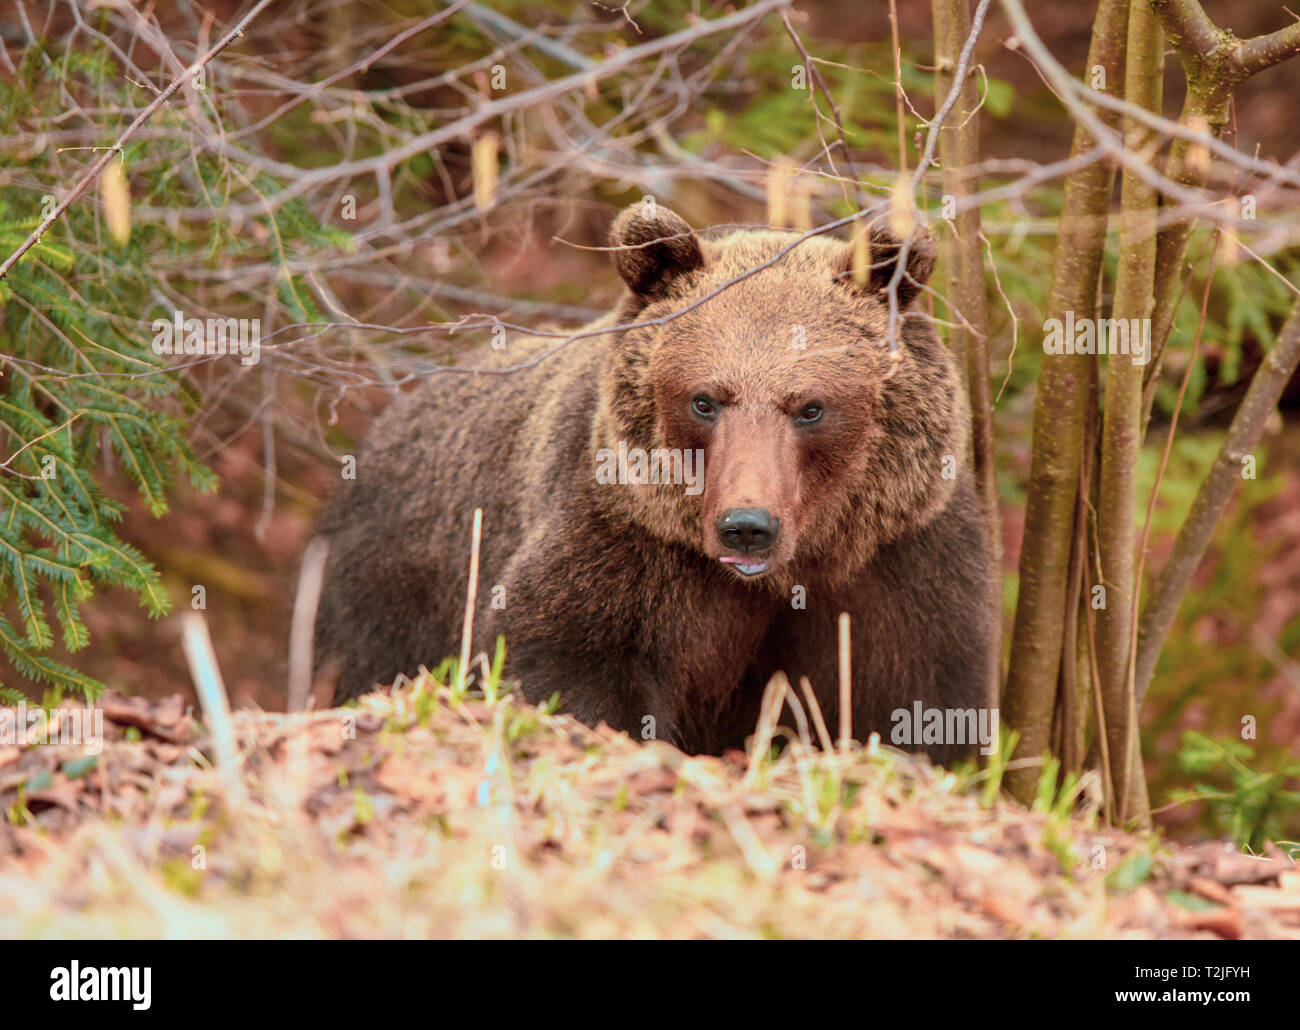 Portrait of brown bear in forest - Stock Image